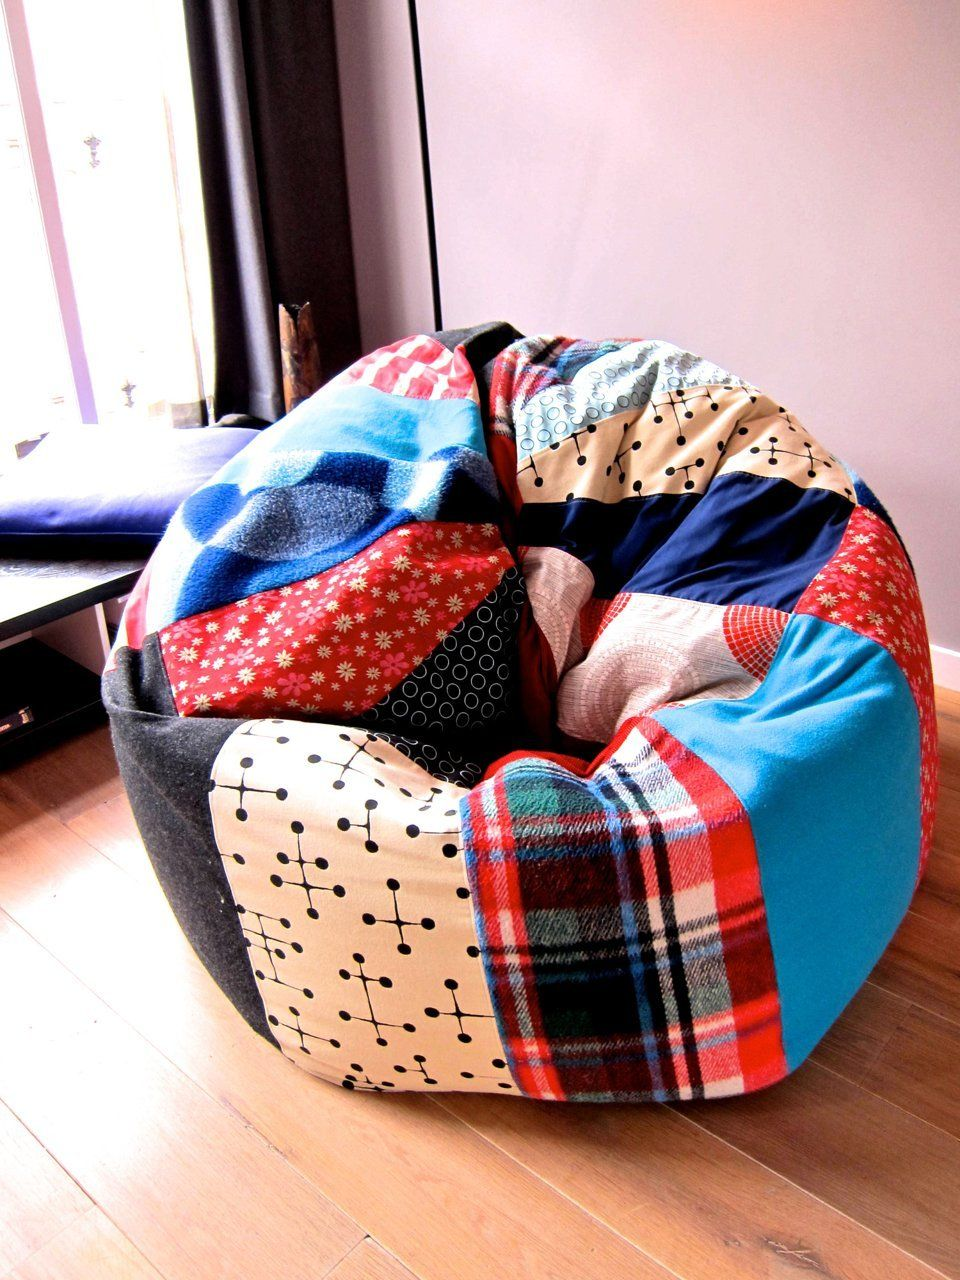 AT Maria Erics Creative Comfortable Home In Amsterdam Quilted Bean Bag Chair